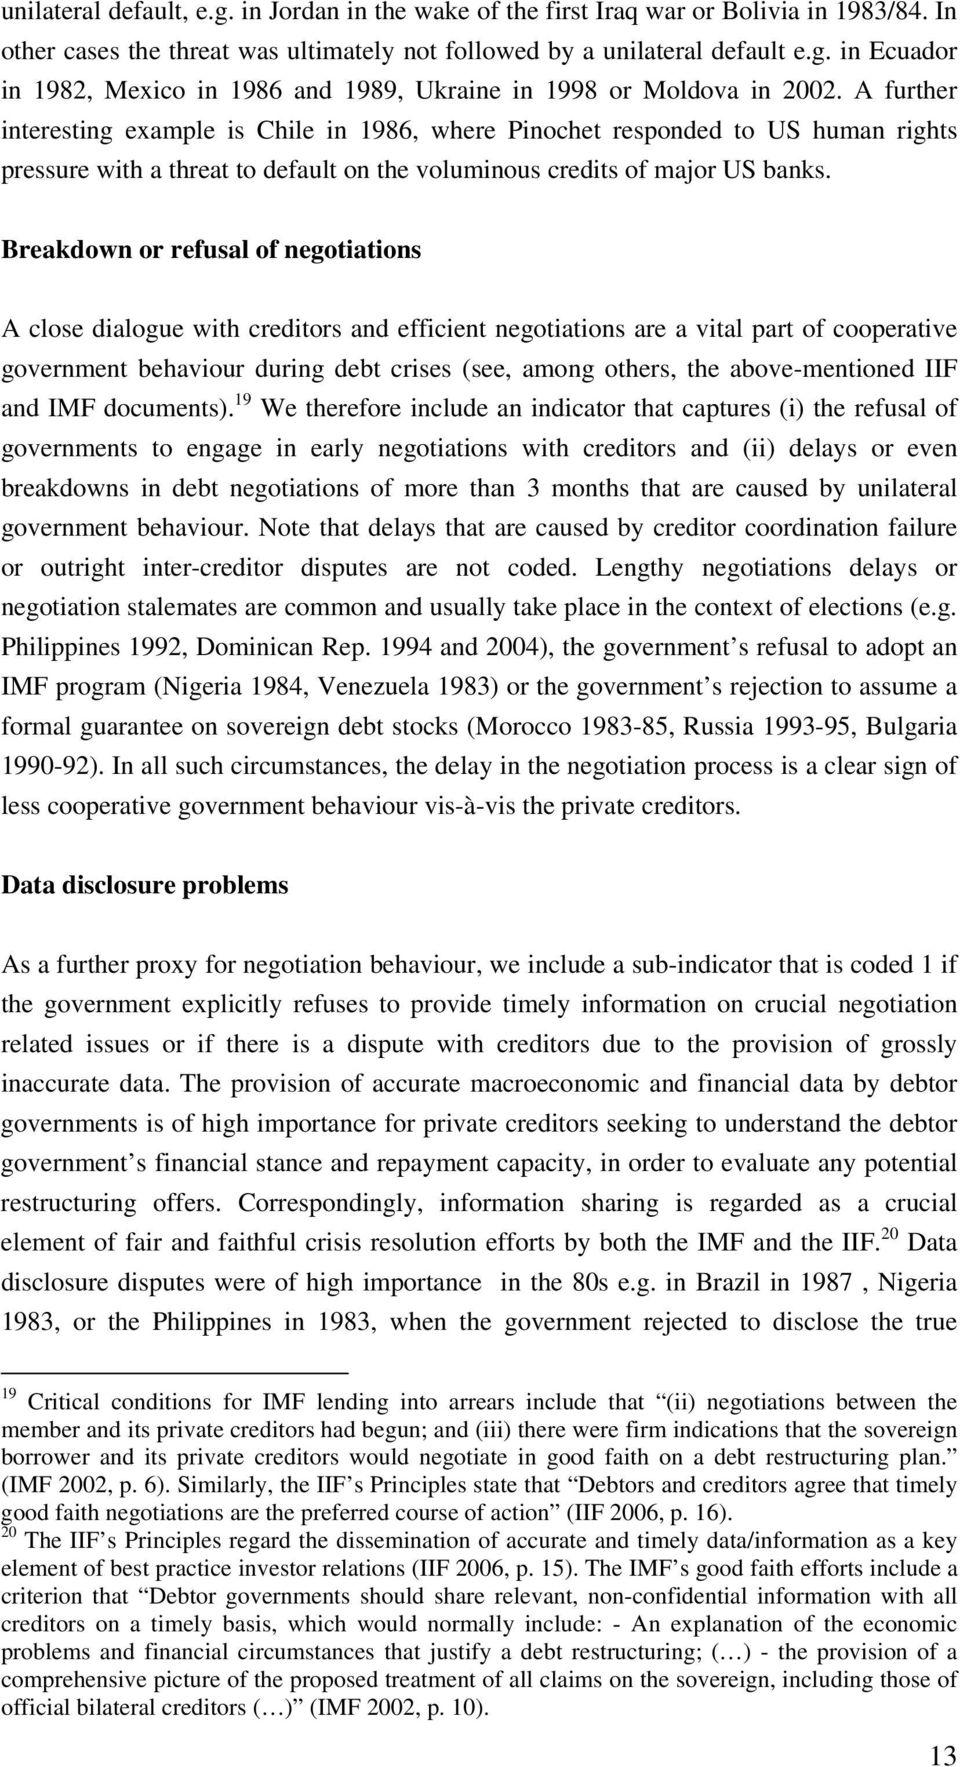 Breakdown or refusal of negotiations A close dialogue with creditors and efficient negotiations are a vital part of cooperative government behaviour during debt crises (see, among others, the